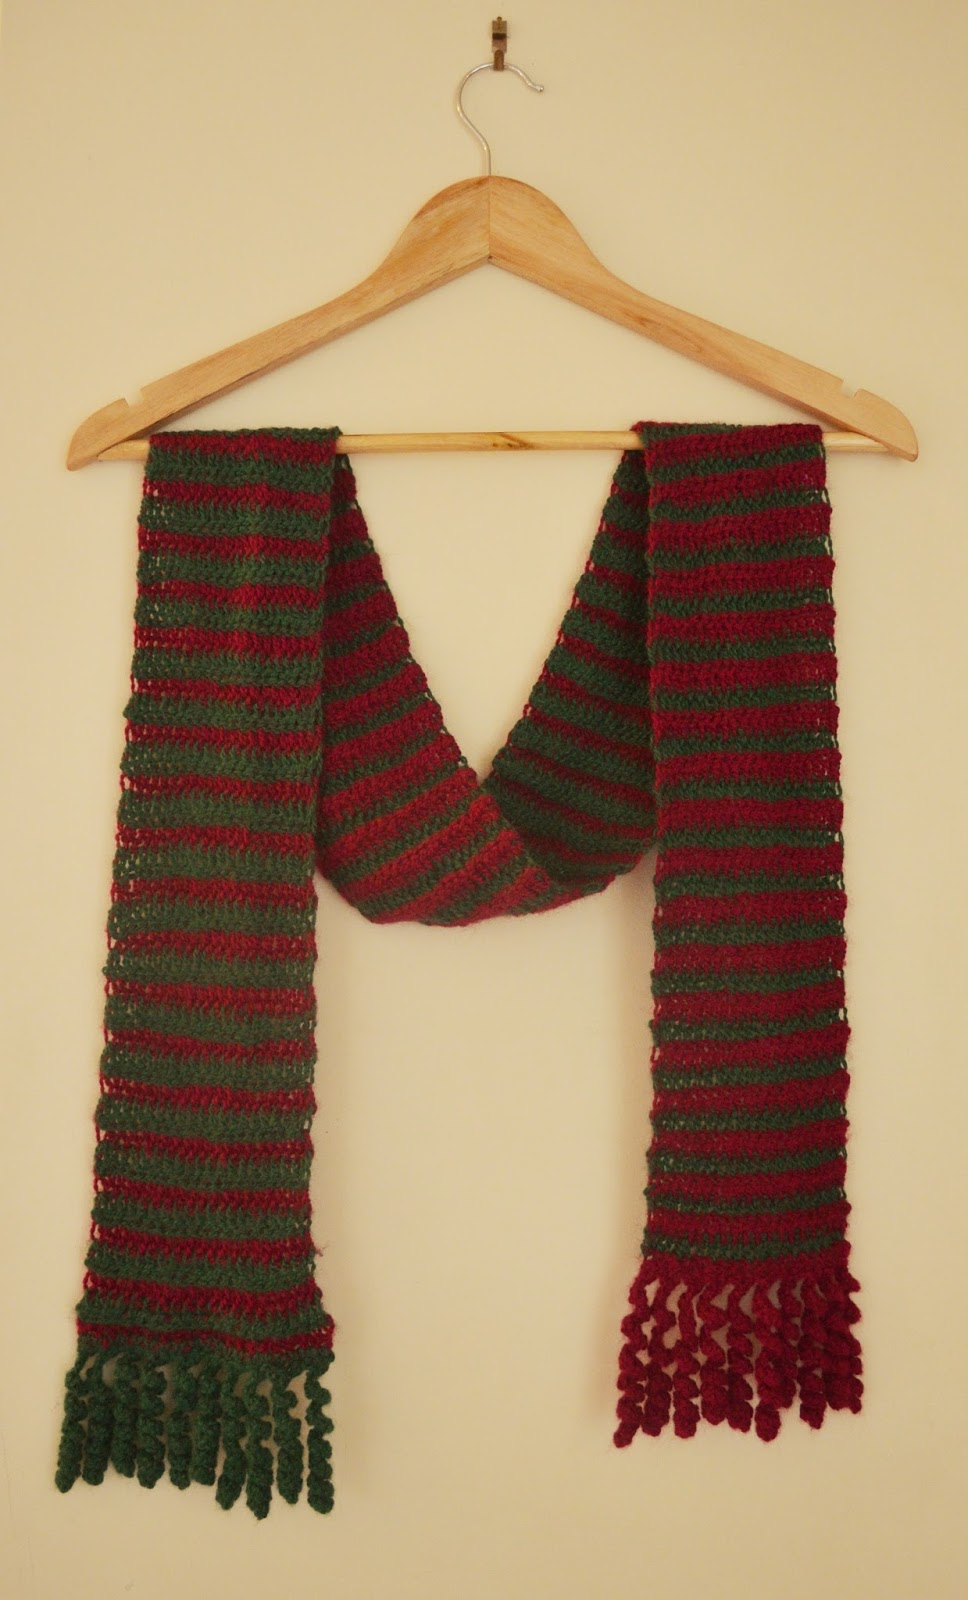 The scarf is draped loosely over a triangular wooden coathanger as if it  were draped over